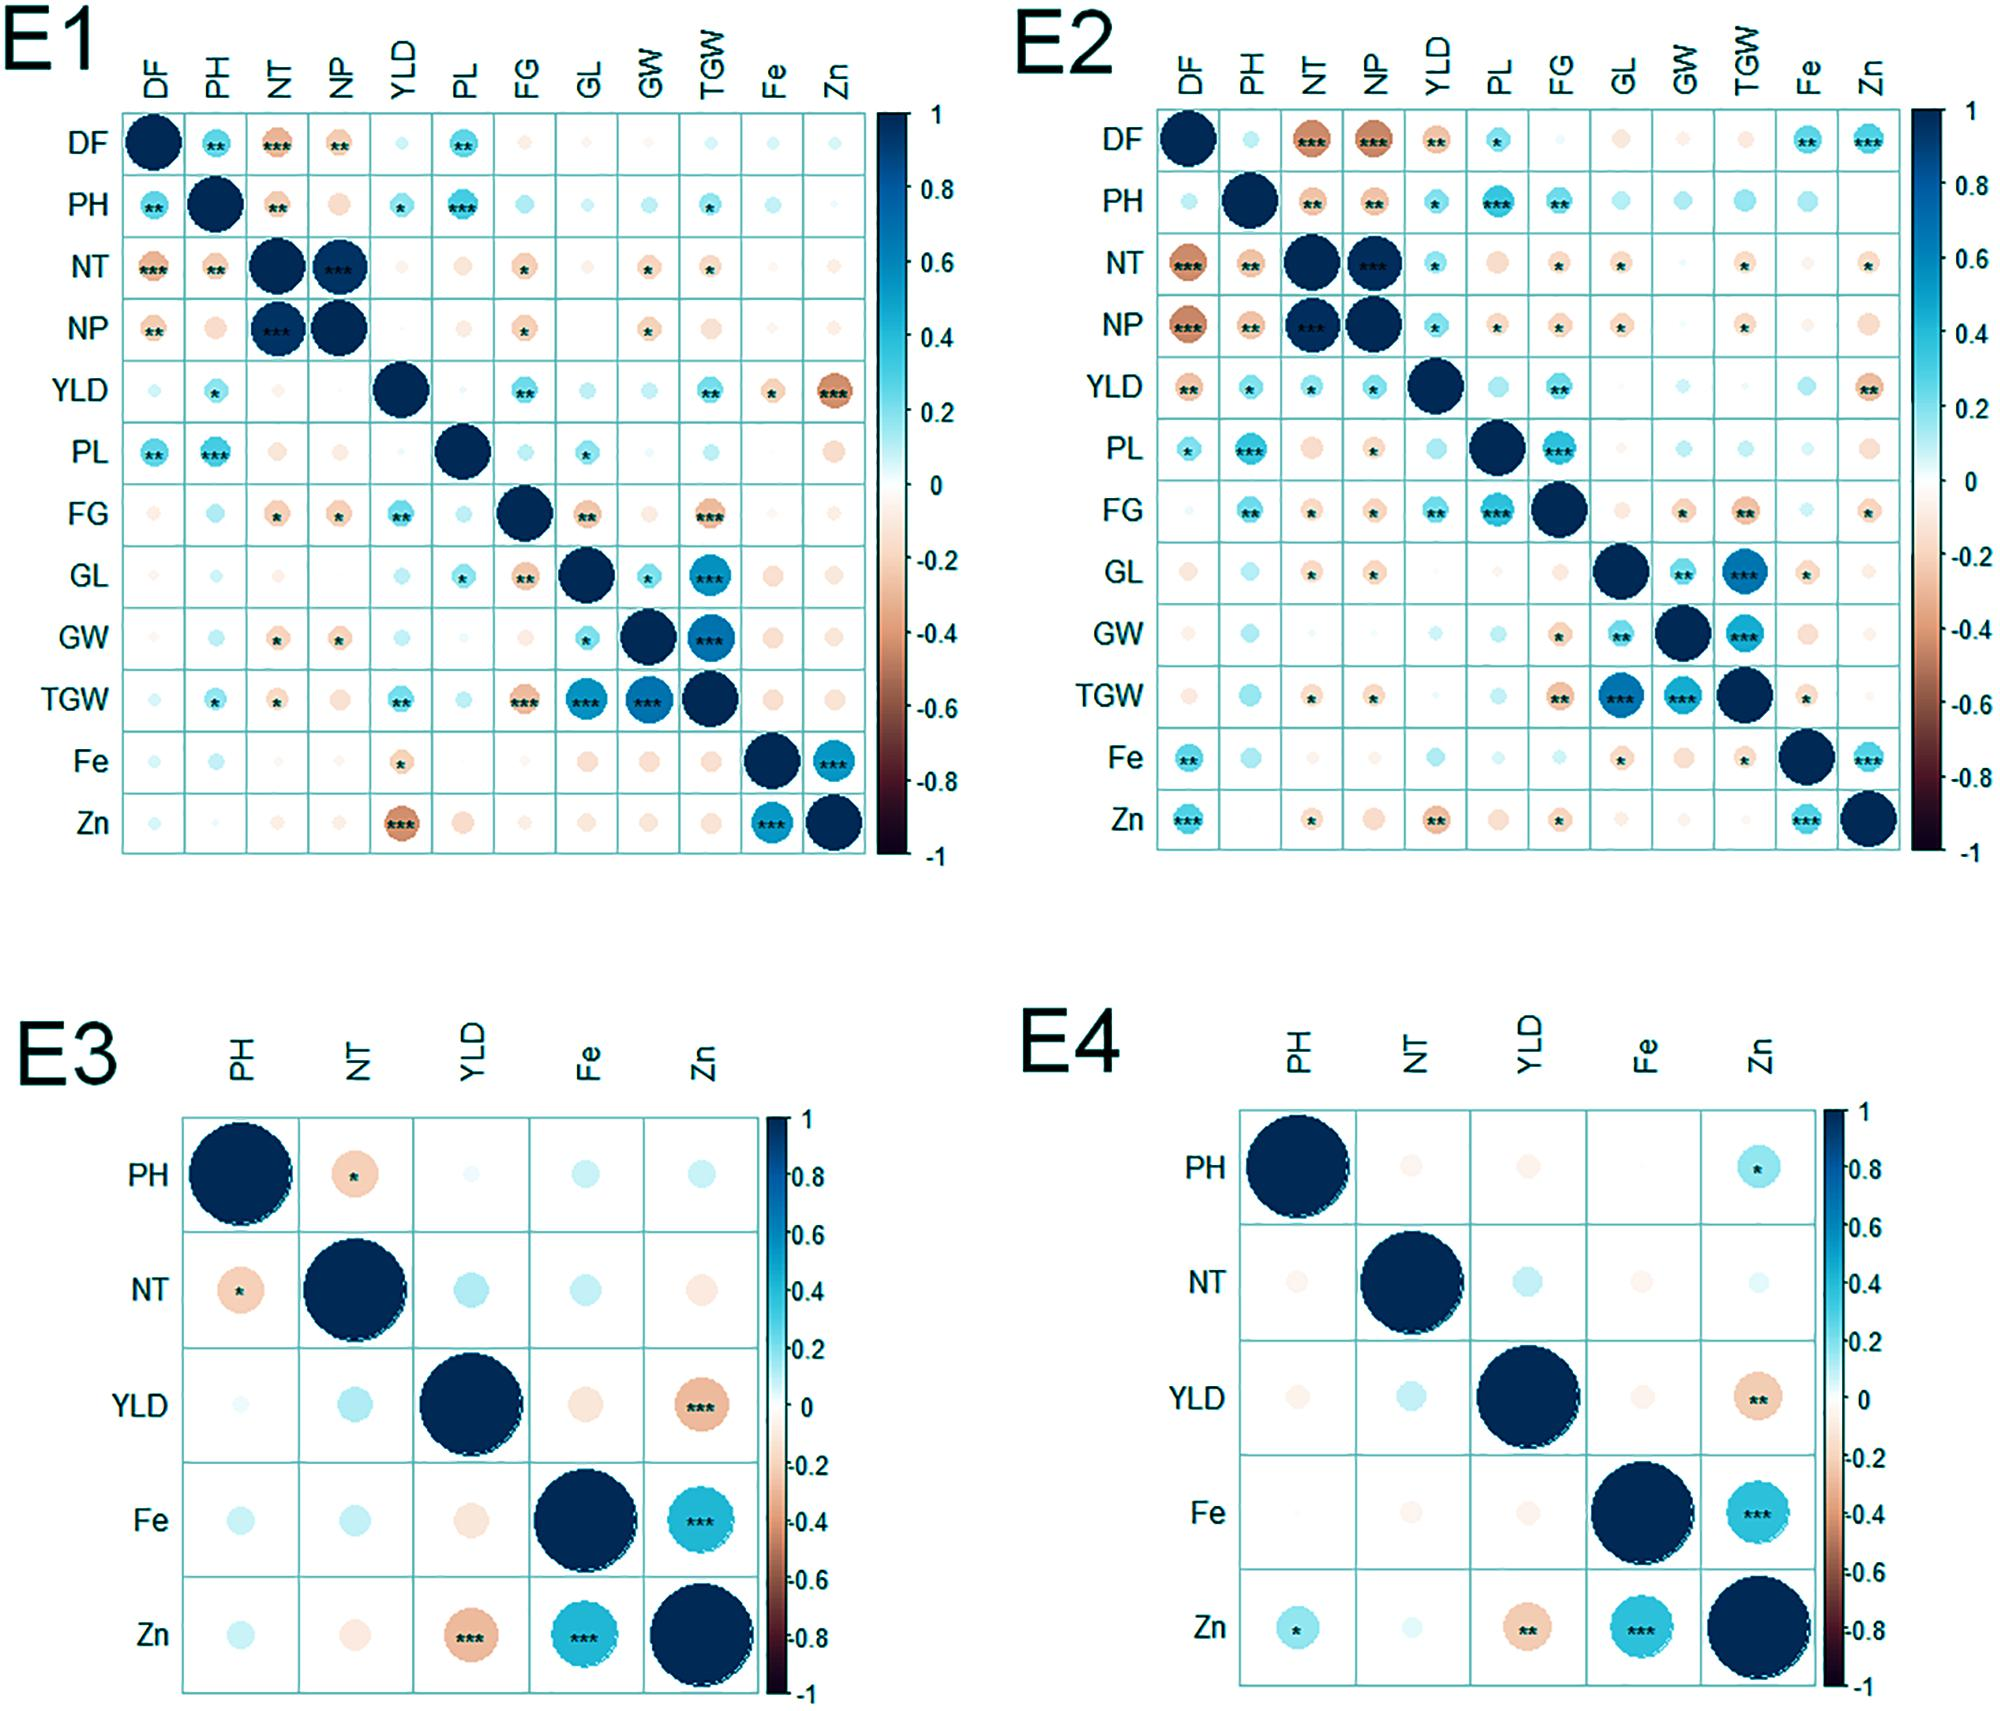 Frontiers | Genome-Wide Association Mapping in a Rice MAGIC Plus